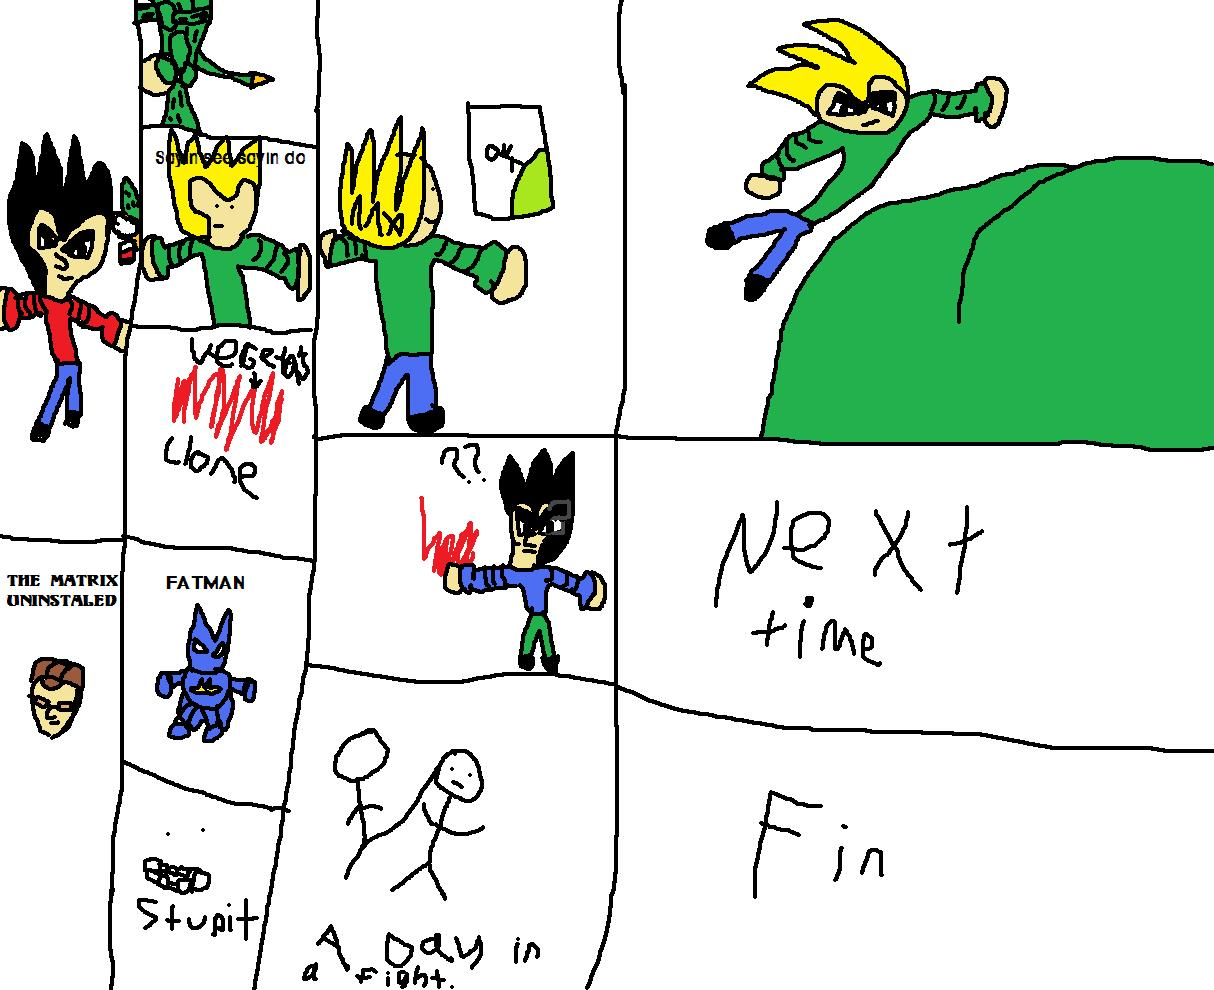 Comix page 2